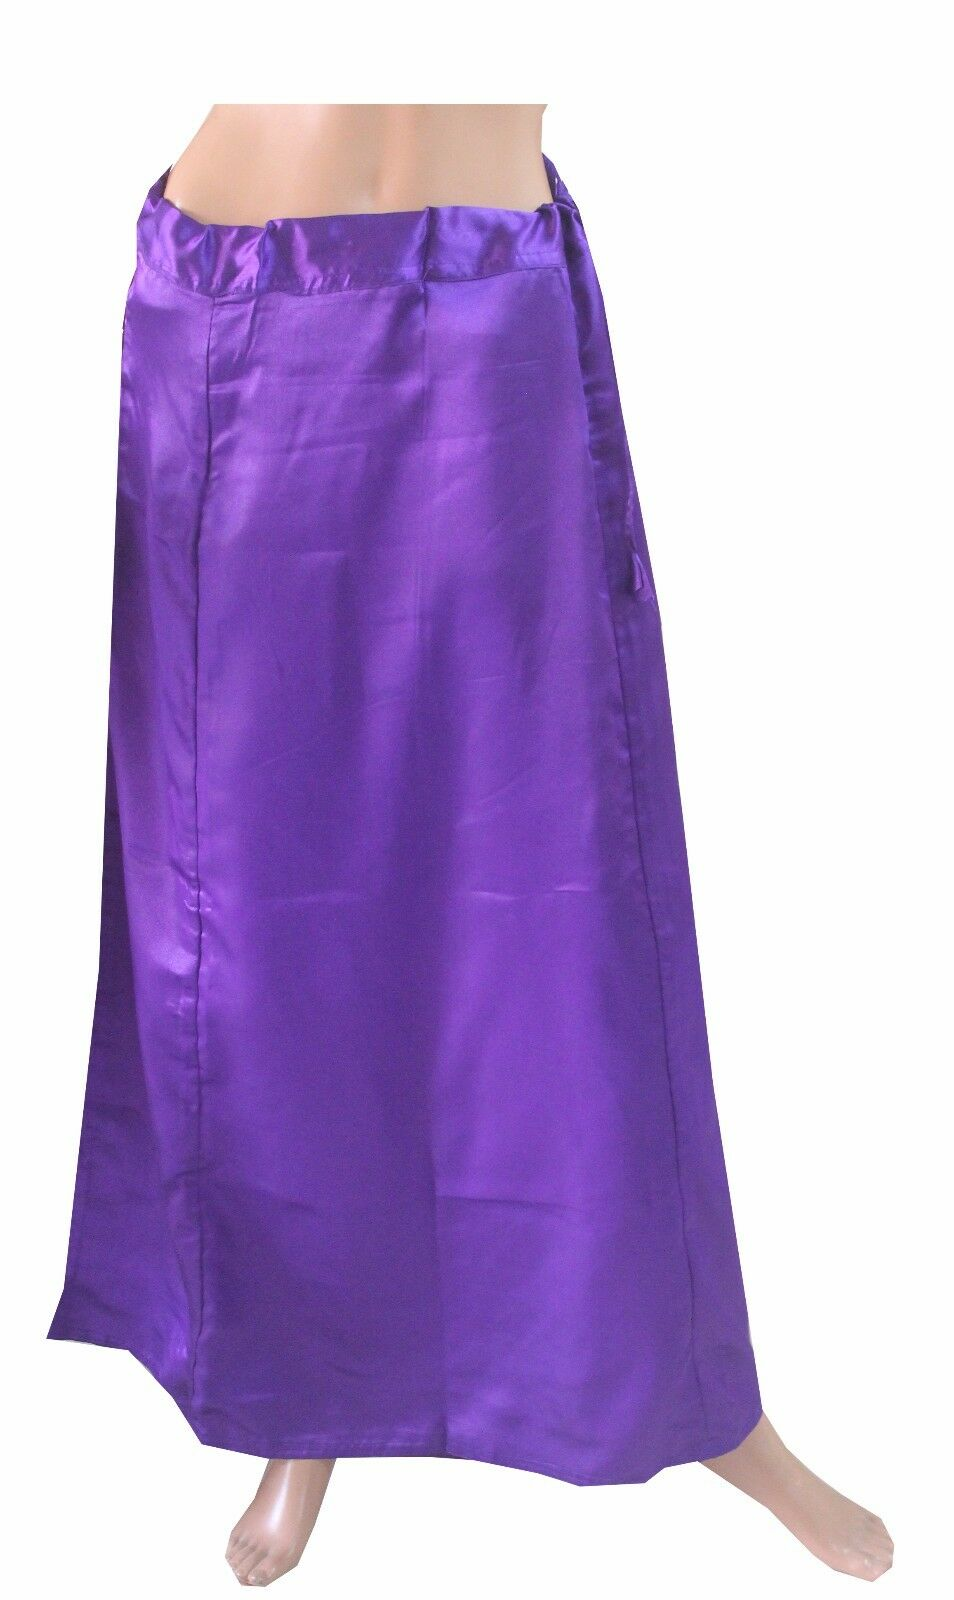 Purple   Satin Indian saree Petticoat Underskirt belly dancing Lehanga slip